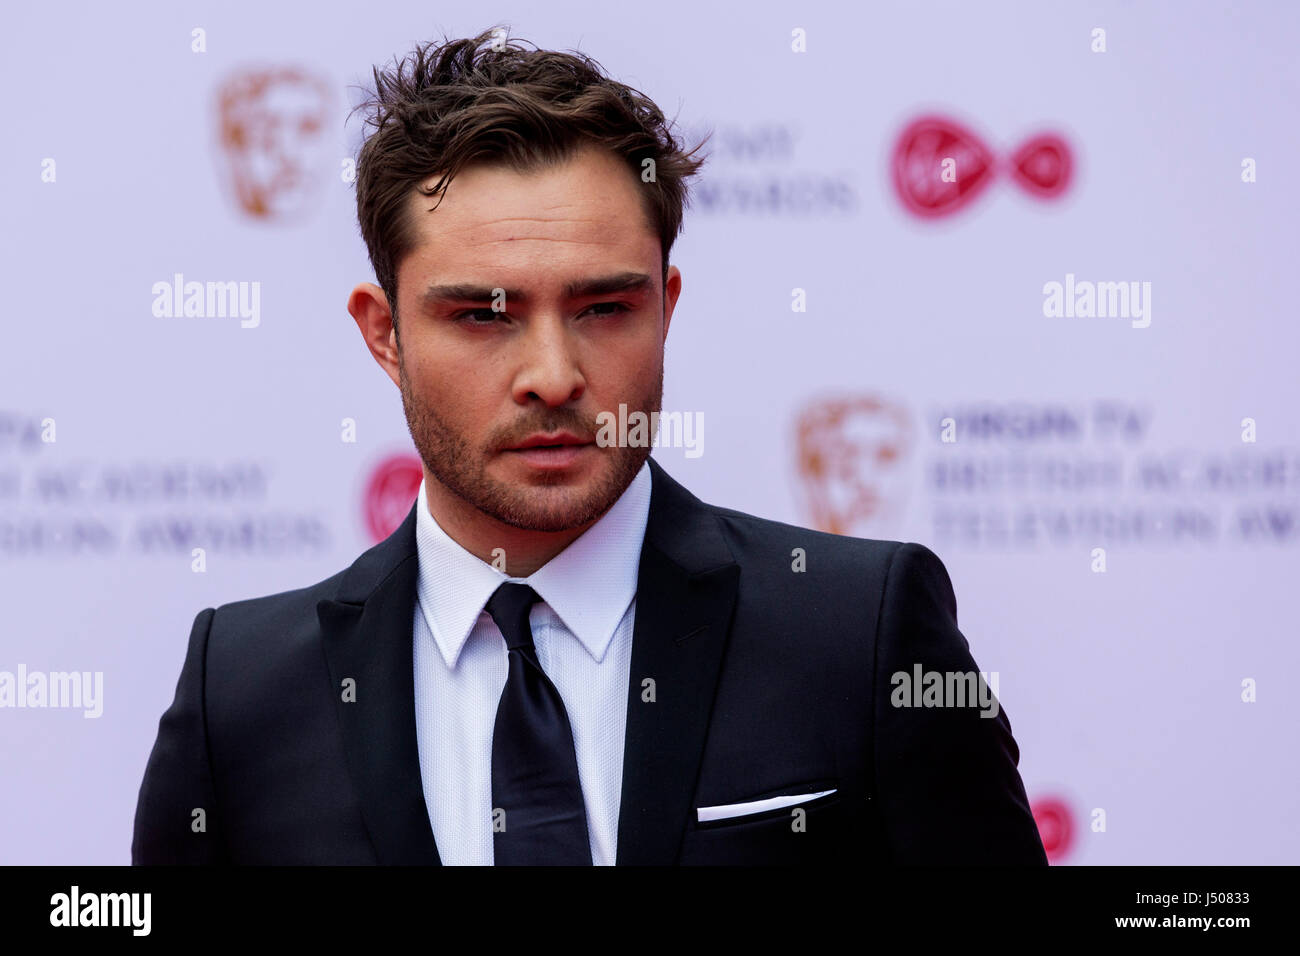 Lonodn, UK. 14 May 2017. Ed Westwick arrives for the Virgin TV British Academy Television Awards (BAFTAs) at the - Stock Image